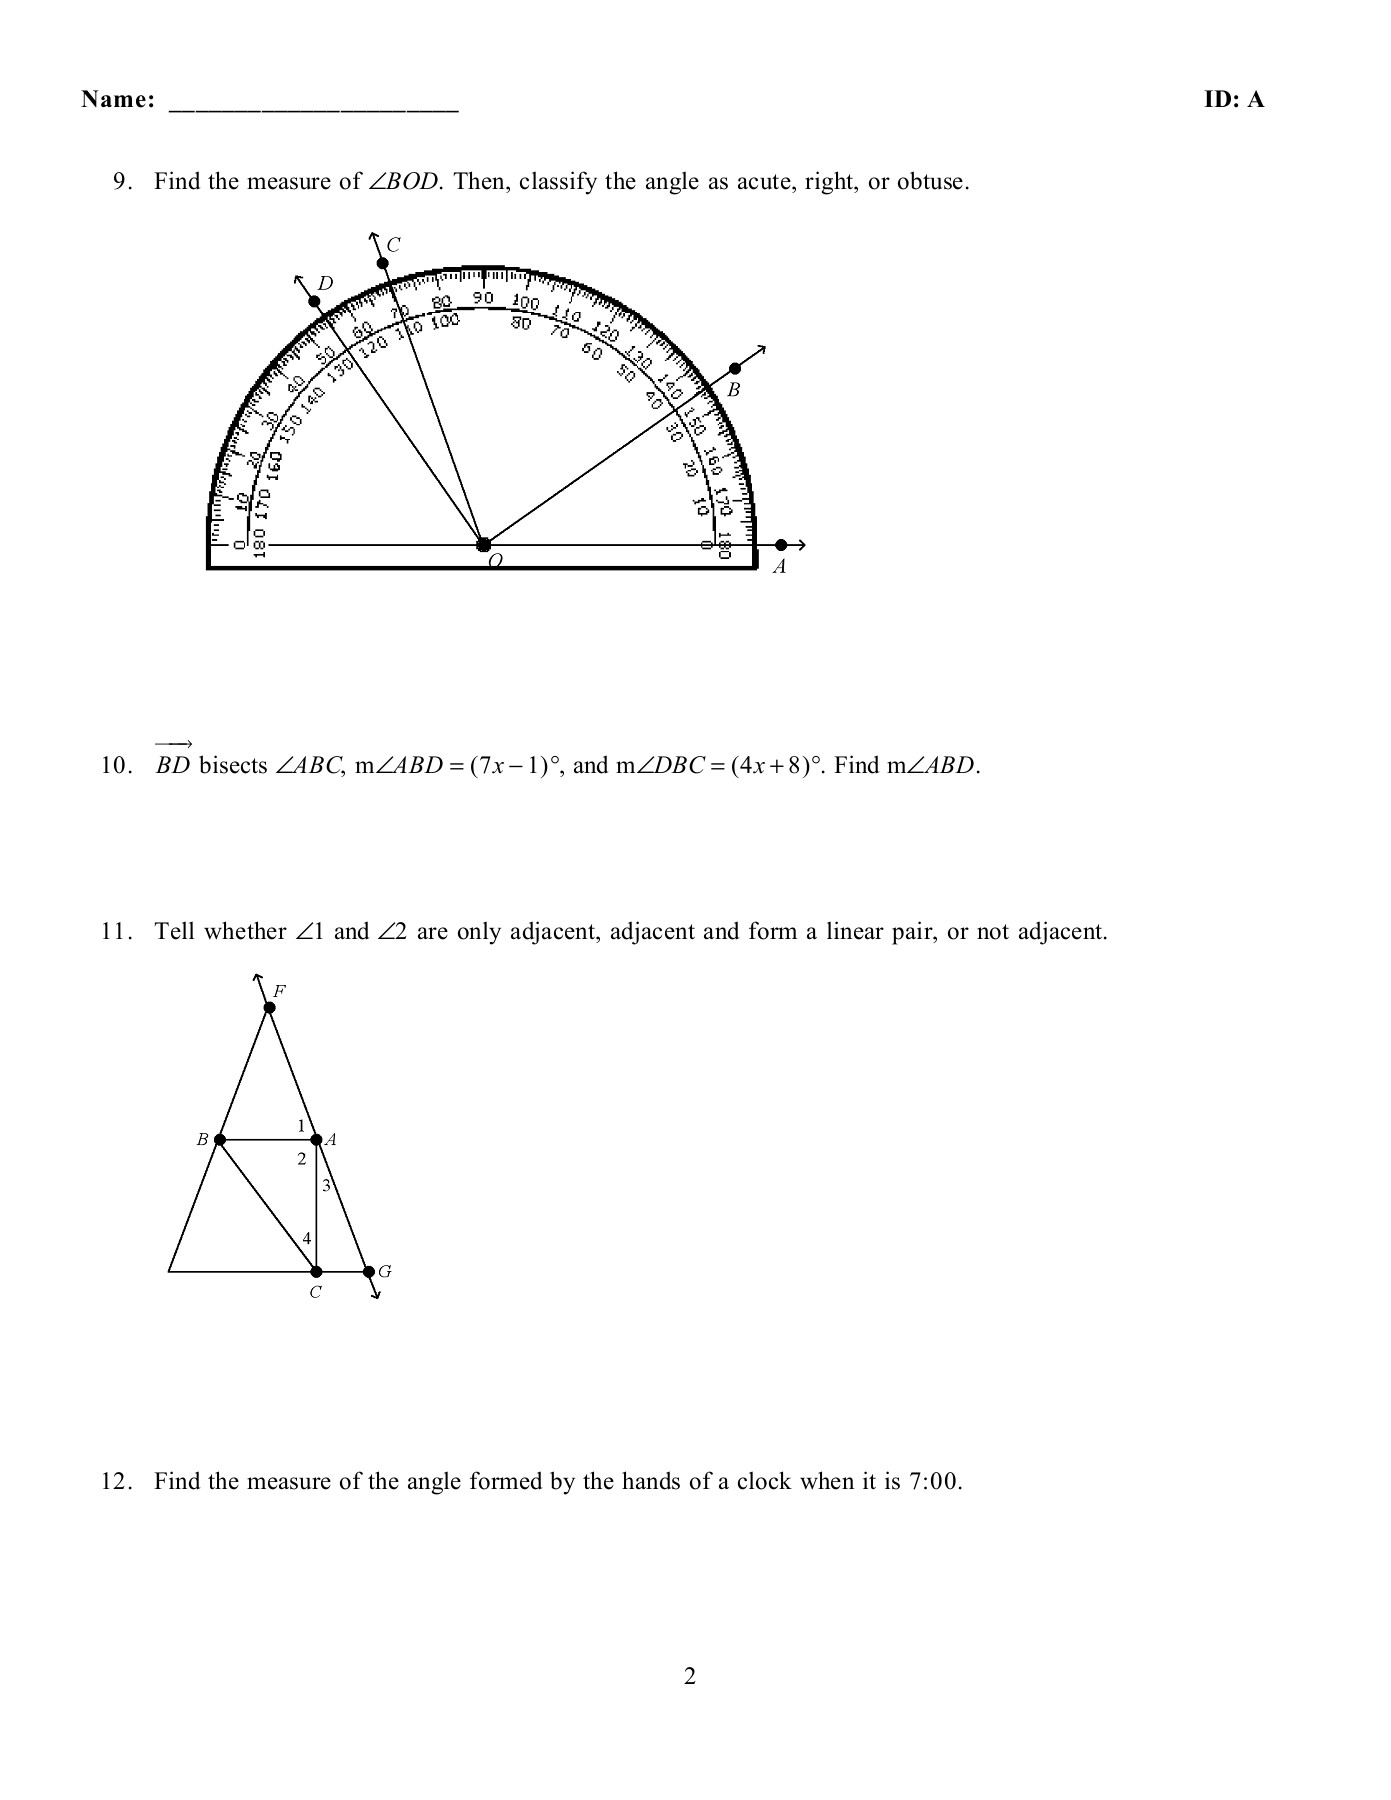 In Which Diagram Do Angles 1 And 2 Form A Linear Pair